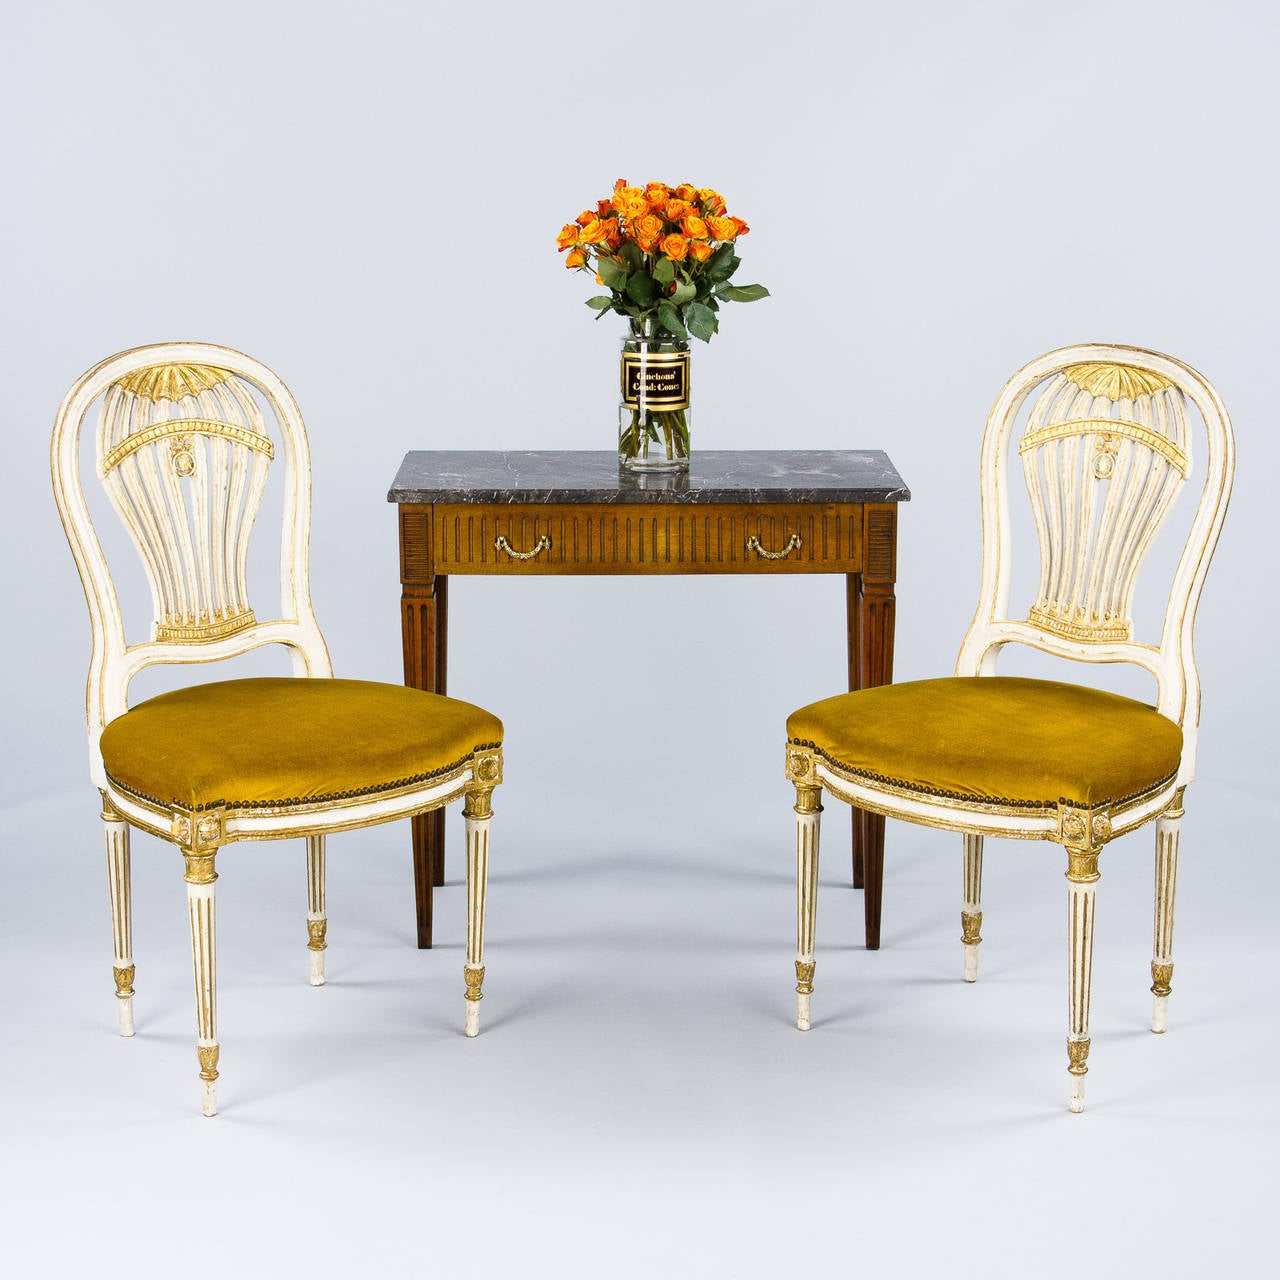 Set of 4 French Louis XVI Style quotMontgolfierequot Chairs  : 2IMG2958l from www.1stdibs.com size 1280 x 1280 jpeg 139kB